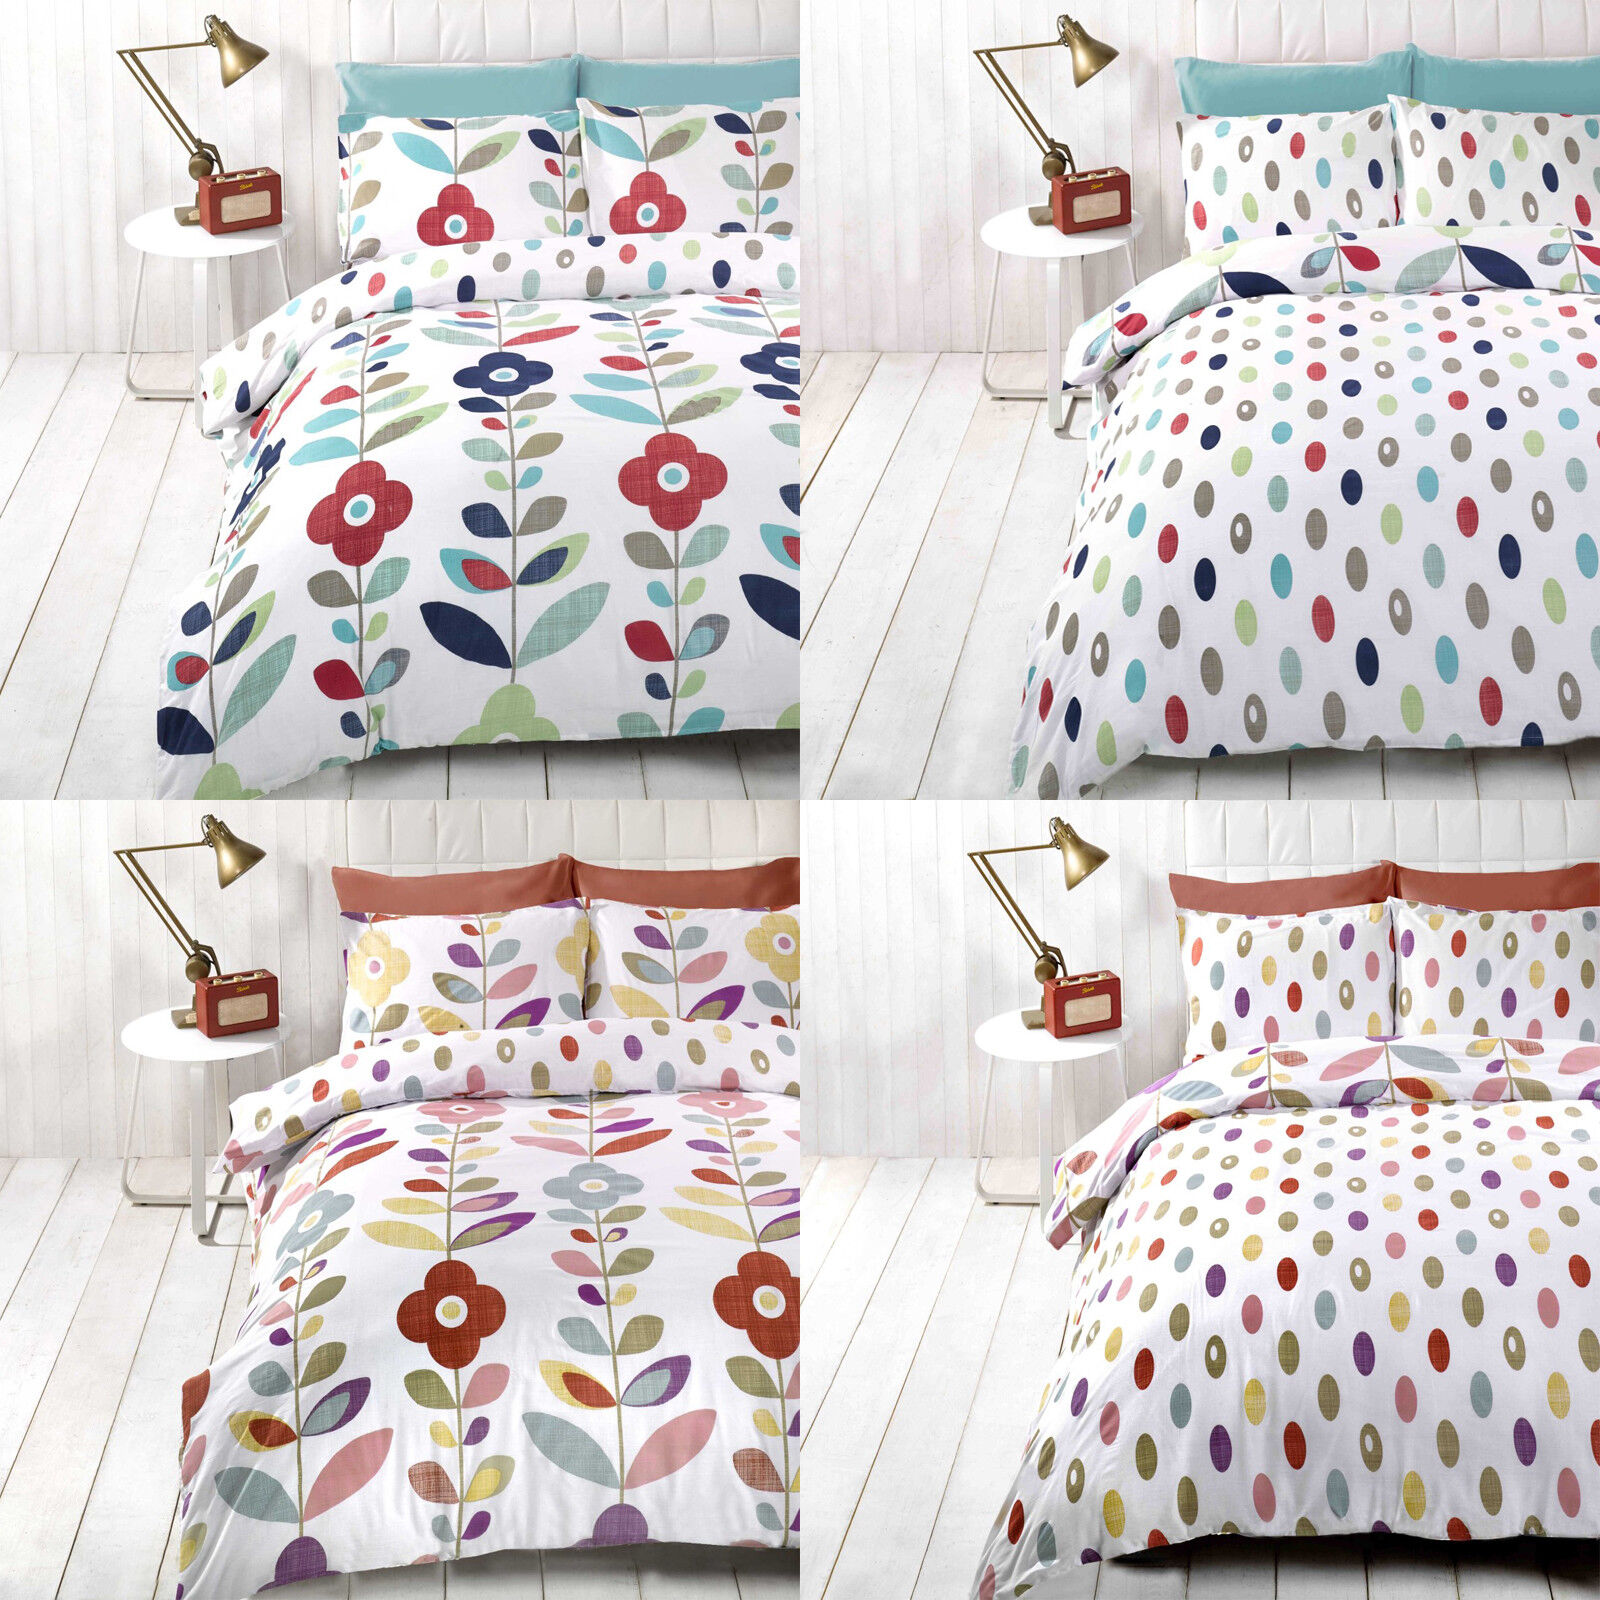 Möbel Wohnen Modern Floral Trail Printed Poly Cotton Duvet Quilt Cover Pillowcase Bedding Set Fiscleconsultancy Com